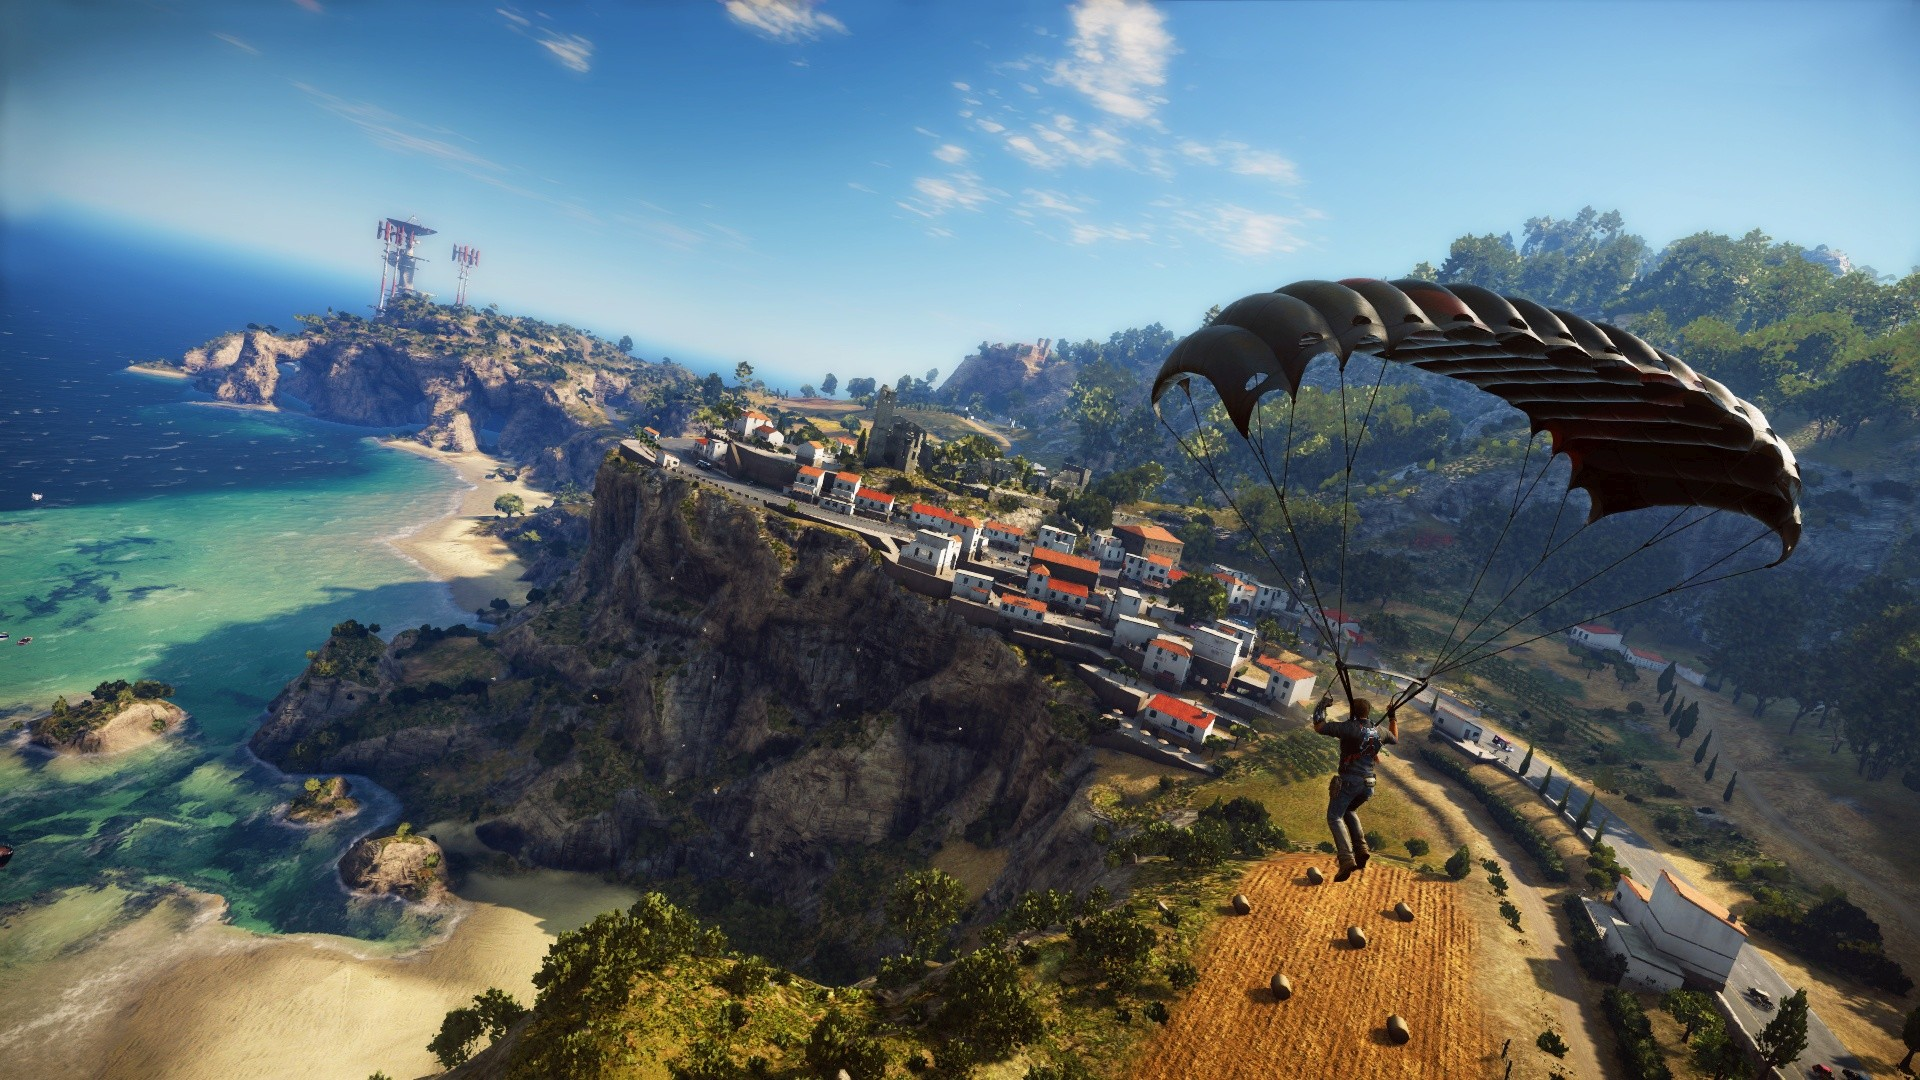 background - Just Cause 3 Multiplayer